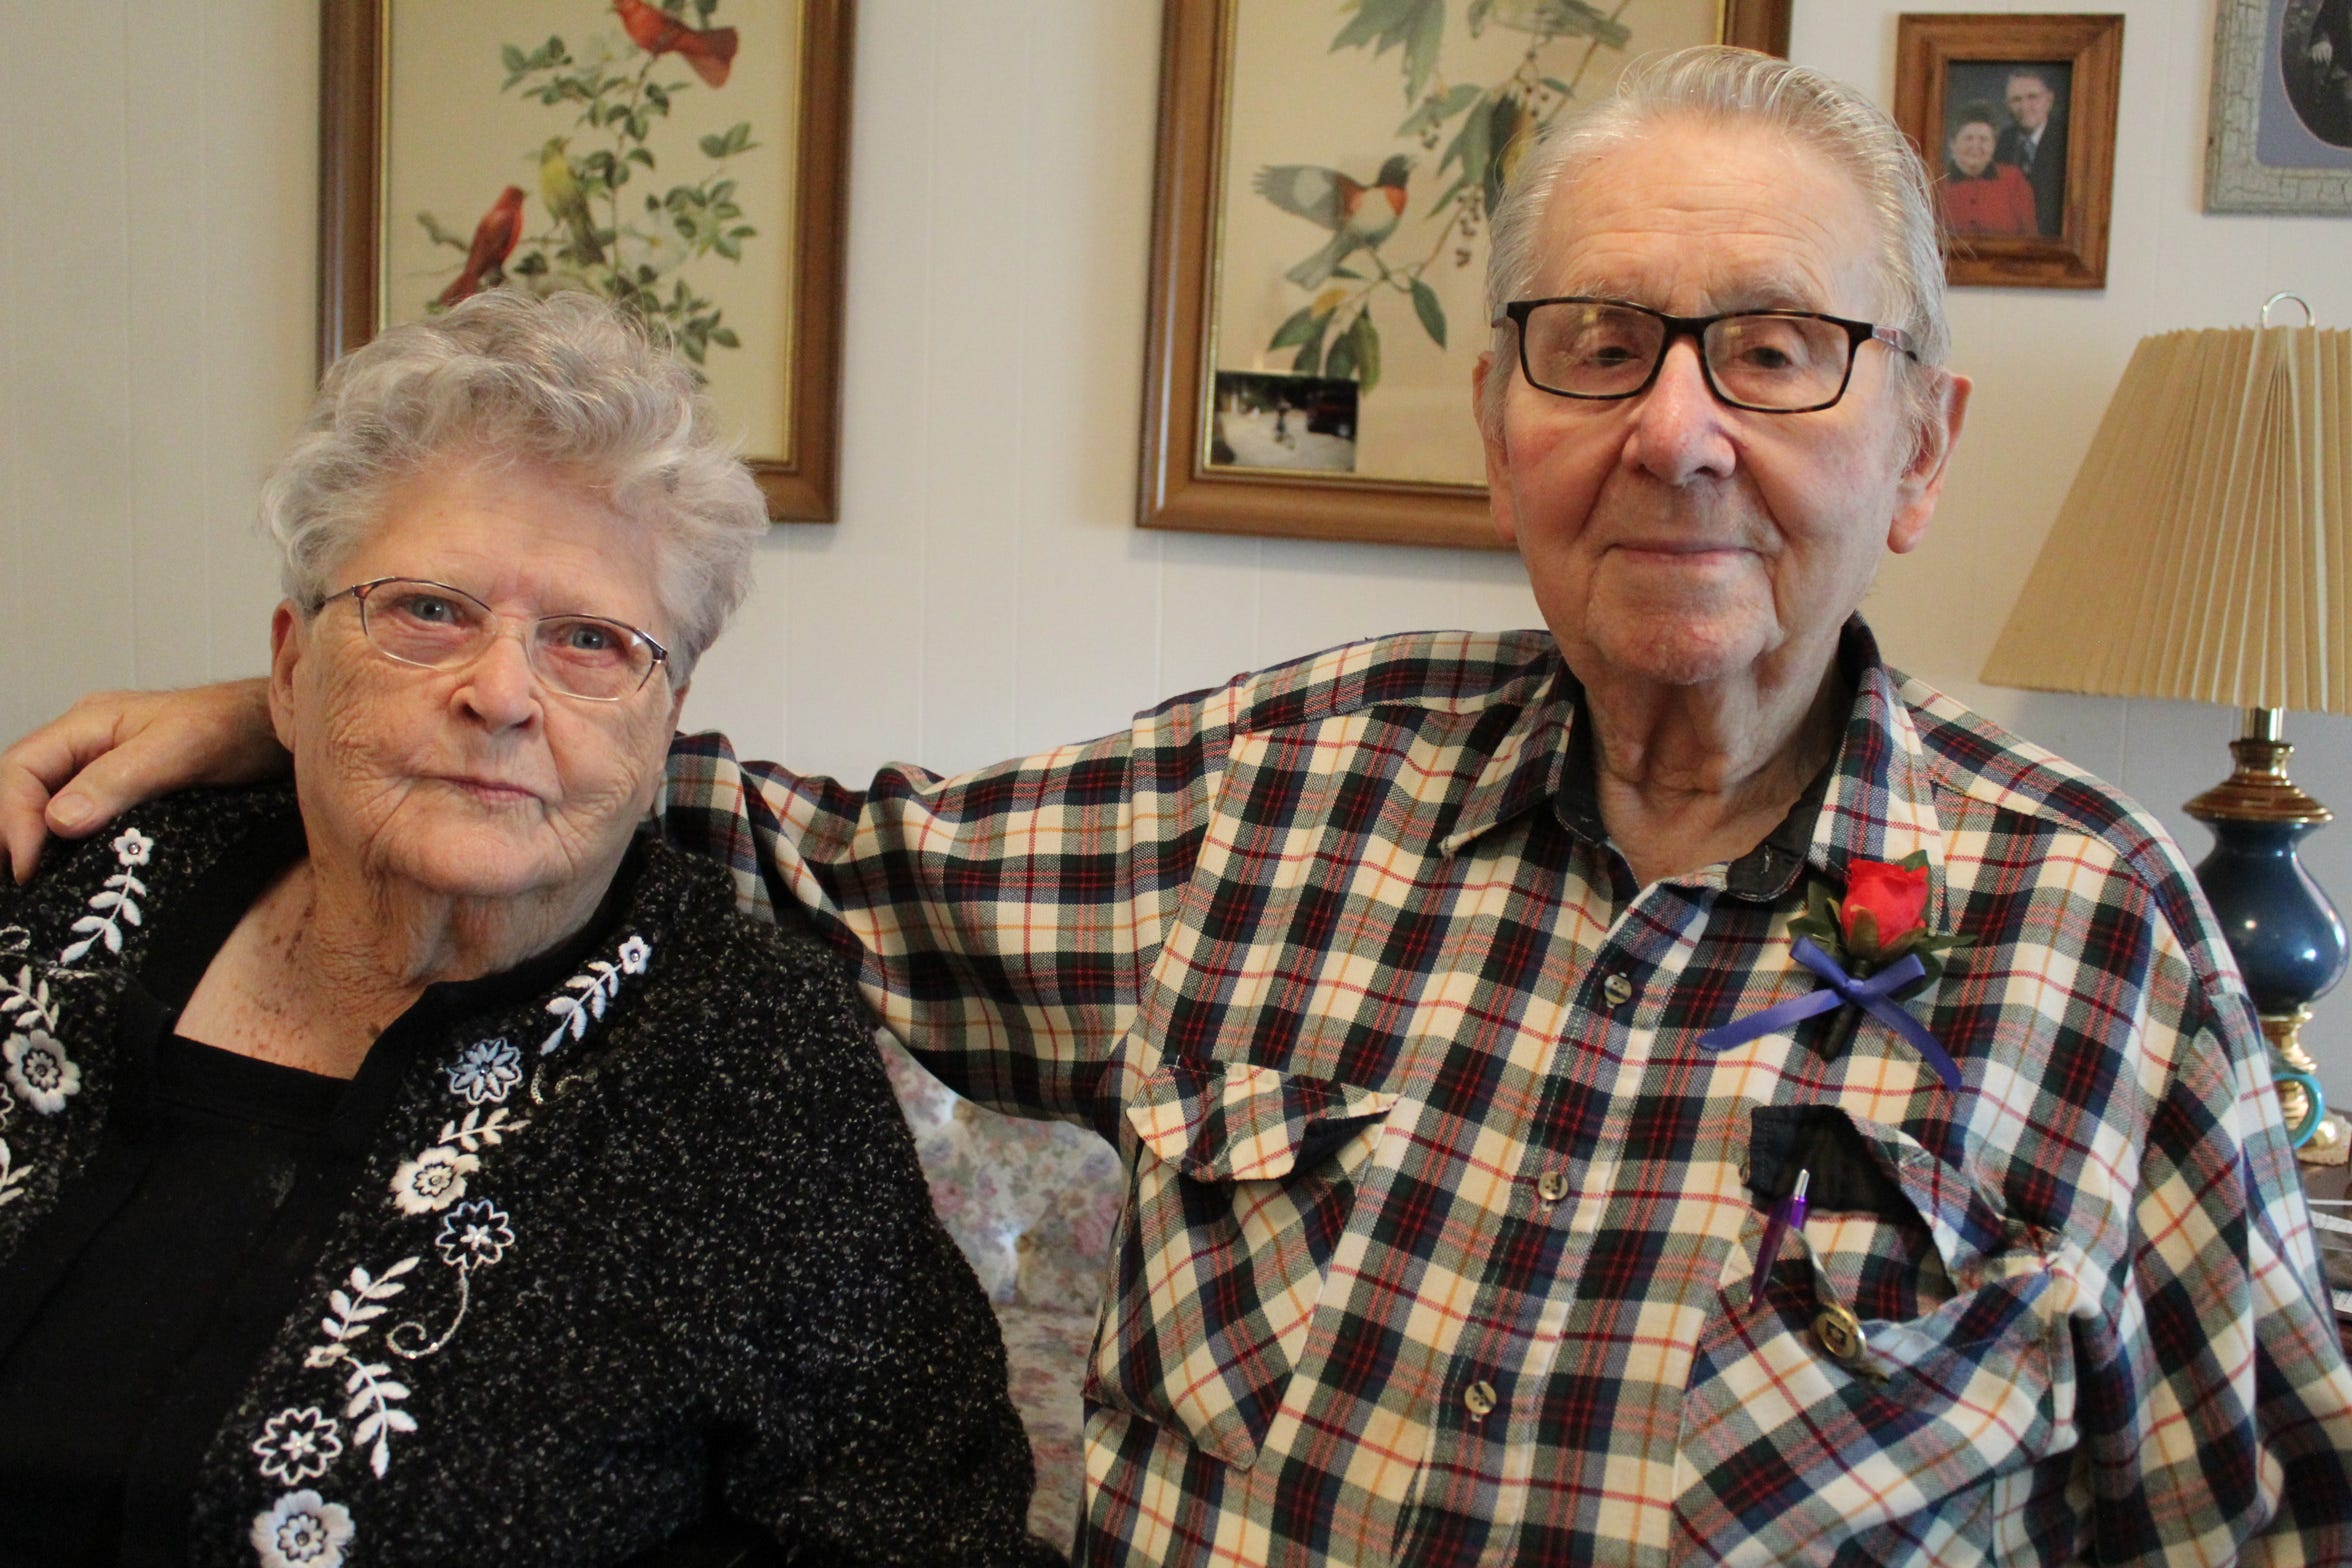 Betty and Calvin Haar will be celebrating their 73rd wedding anniversary Nov. 15. They corresponded with each other while Haar served as a U.S. army paratrooper overseas during World War II.